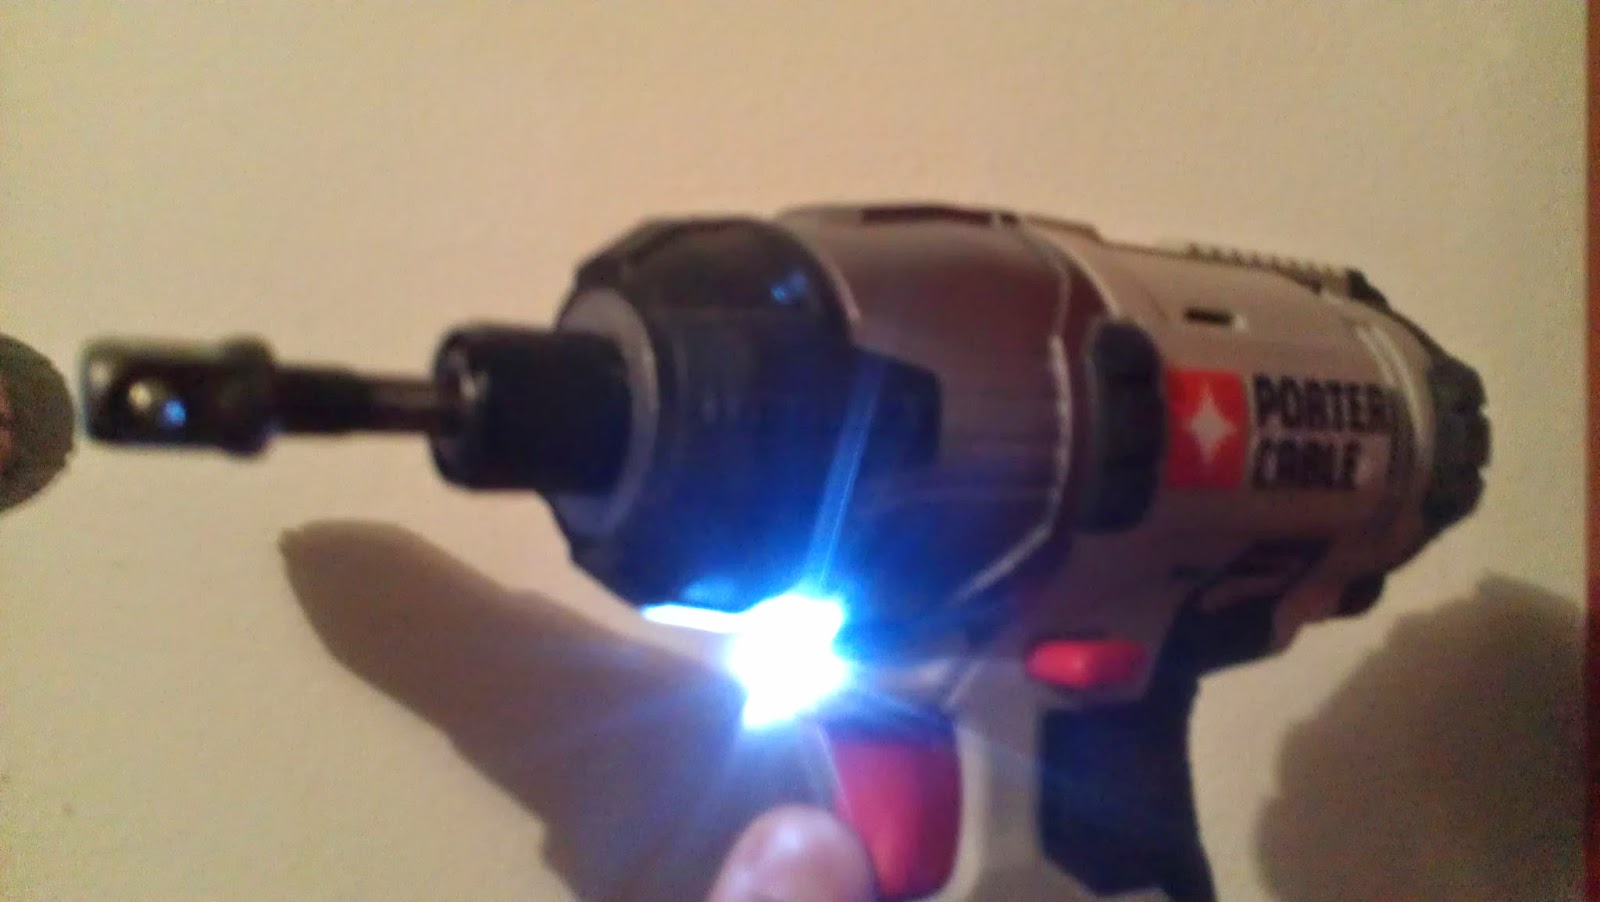 Porter cable 20v impact drill review led light